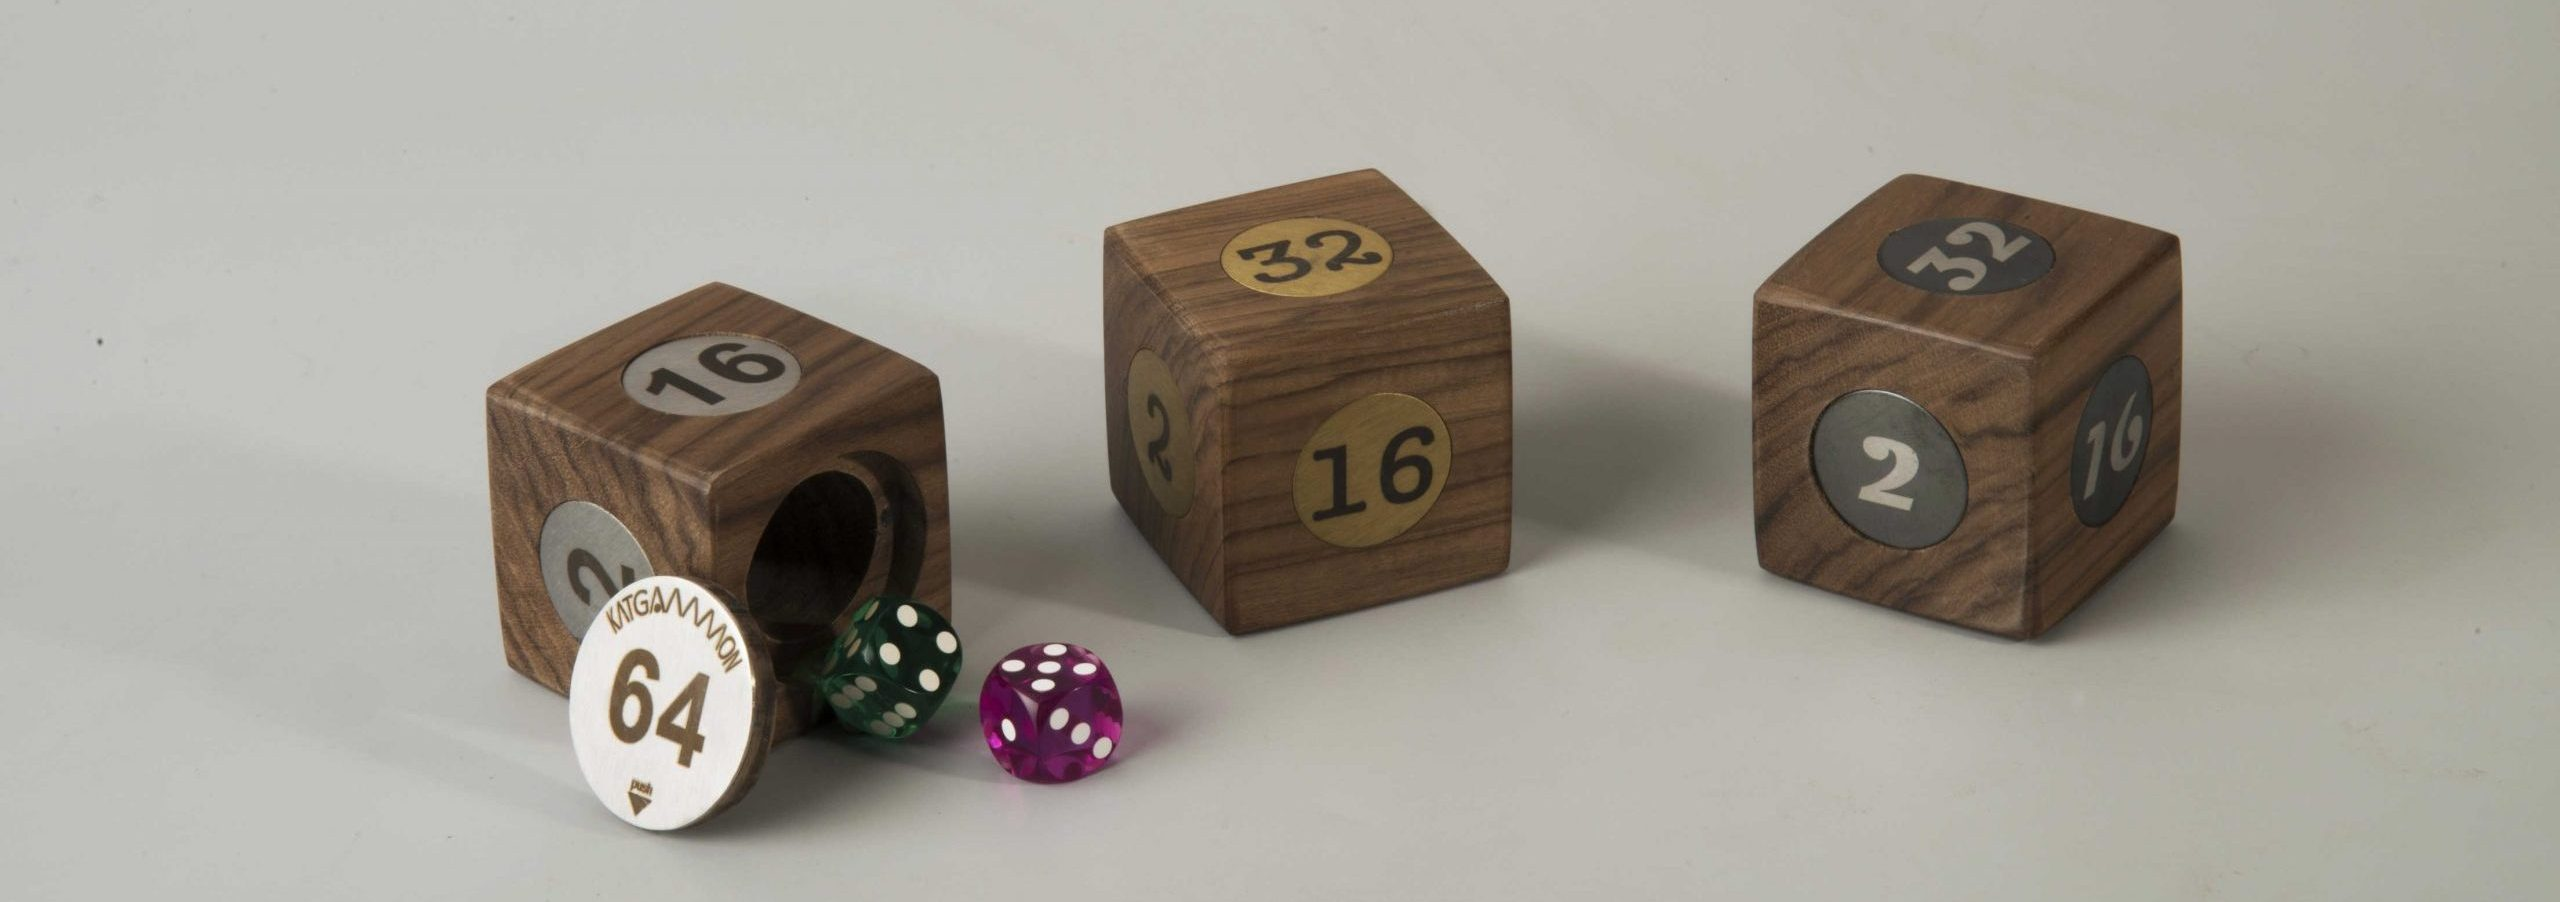 Wooden cube & dice bo